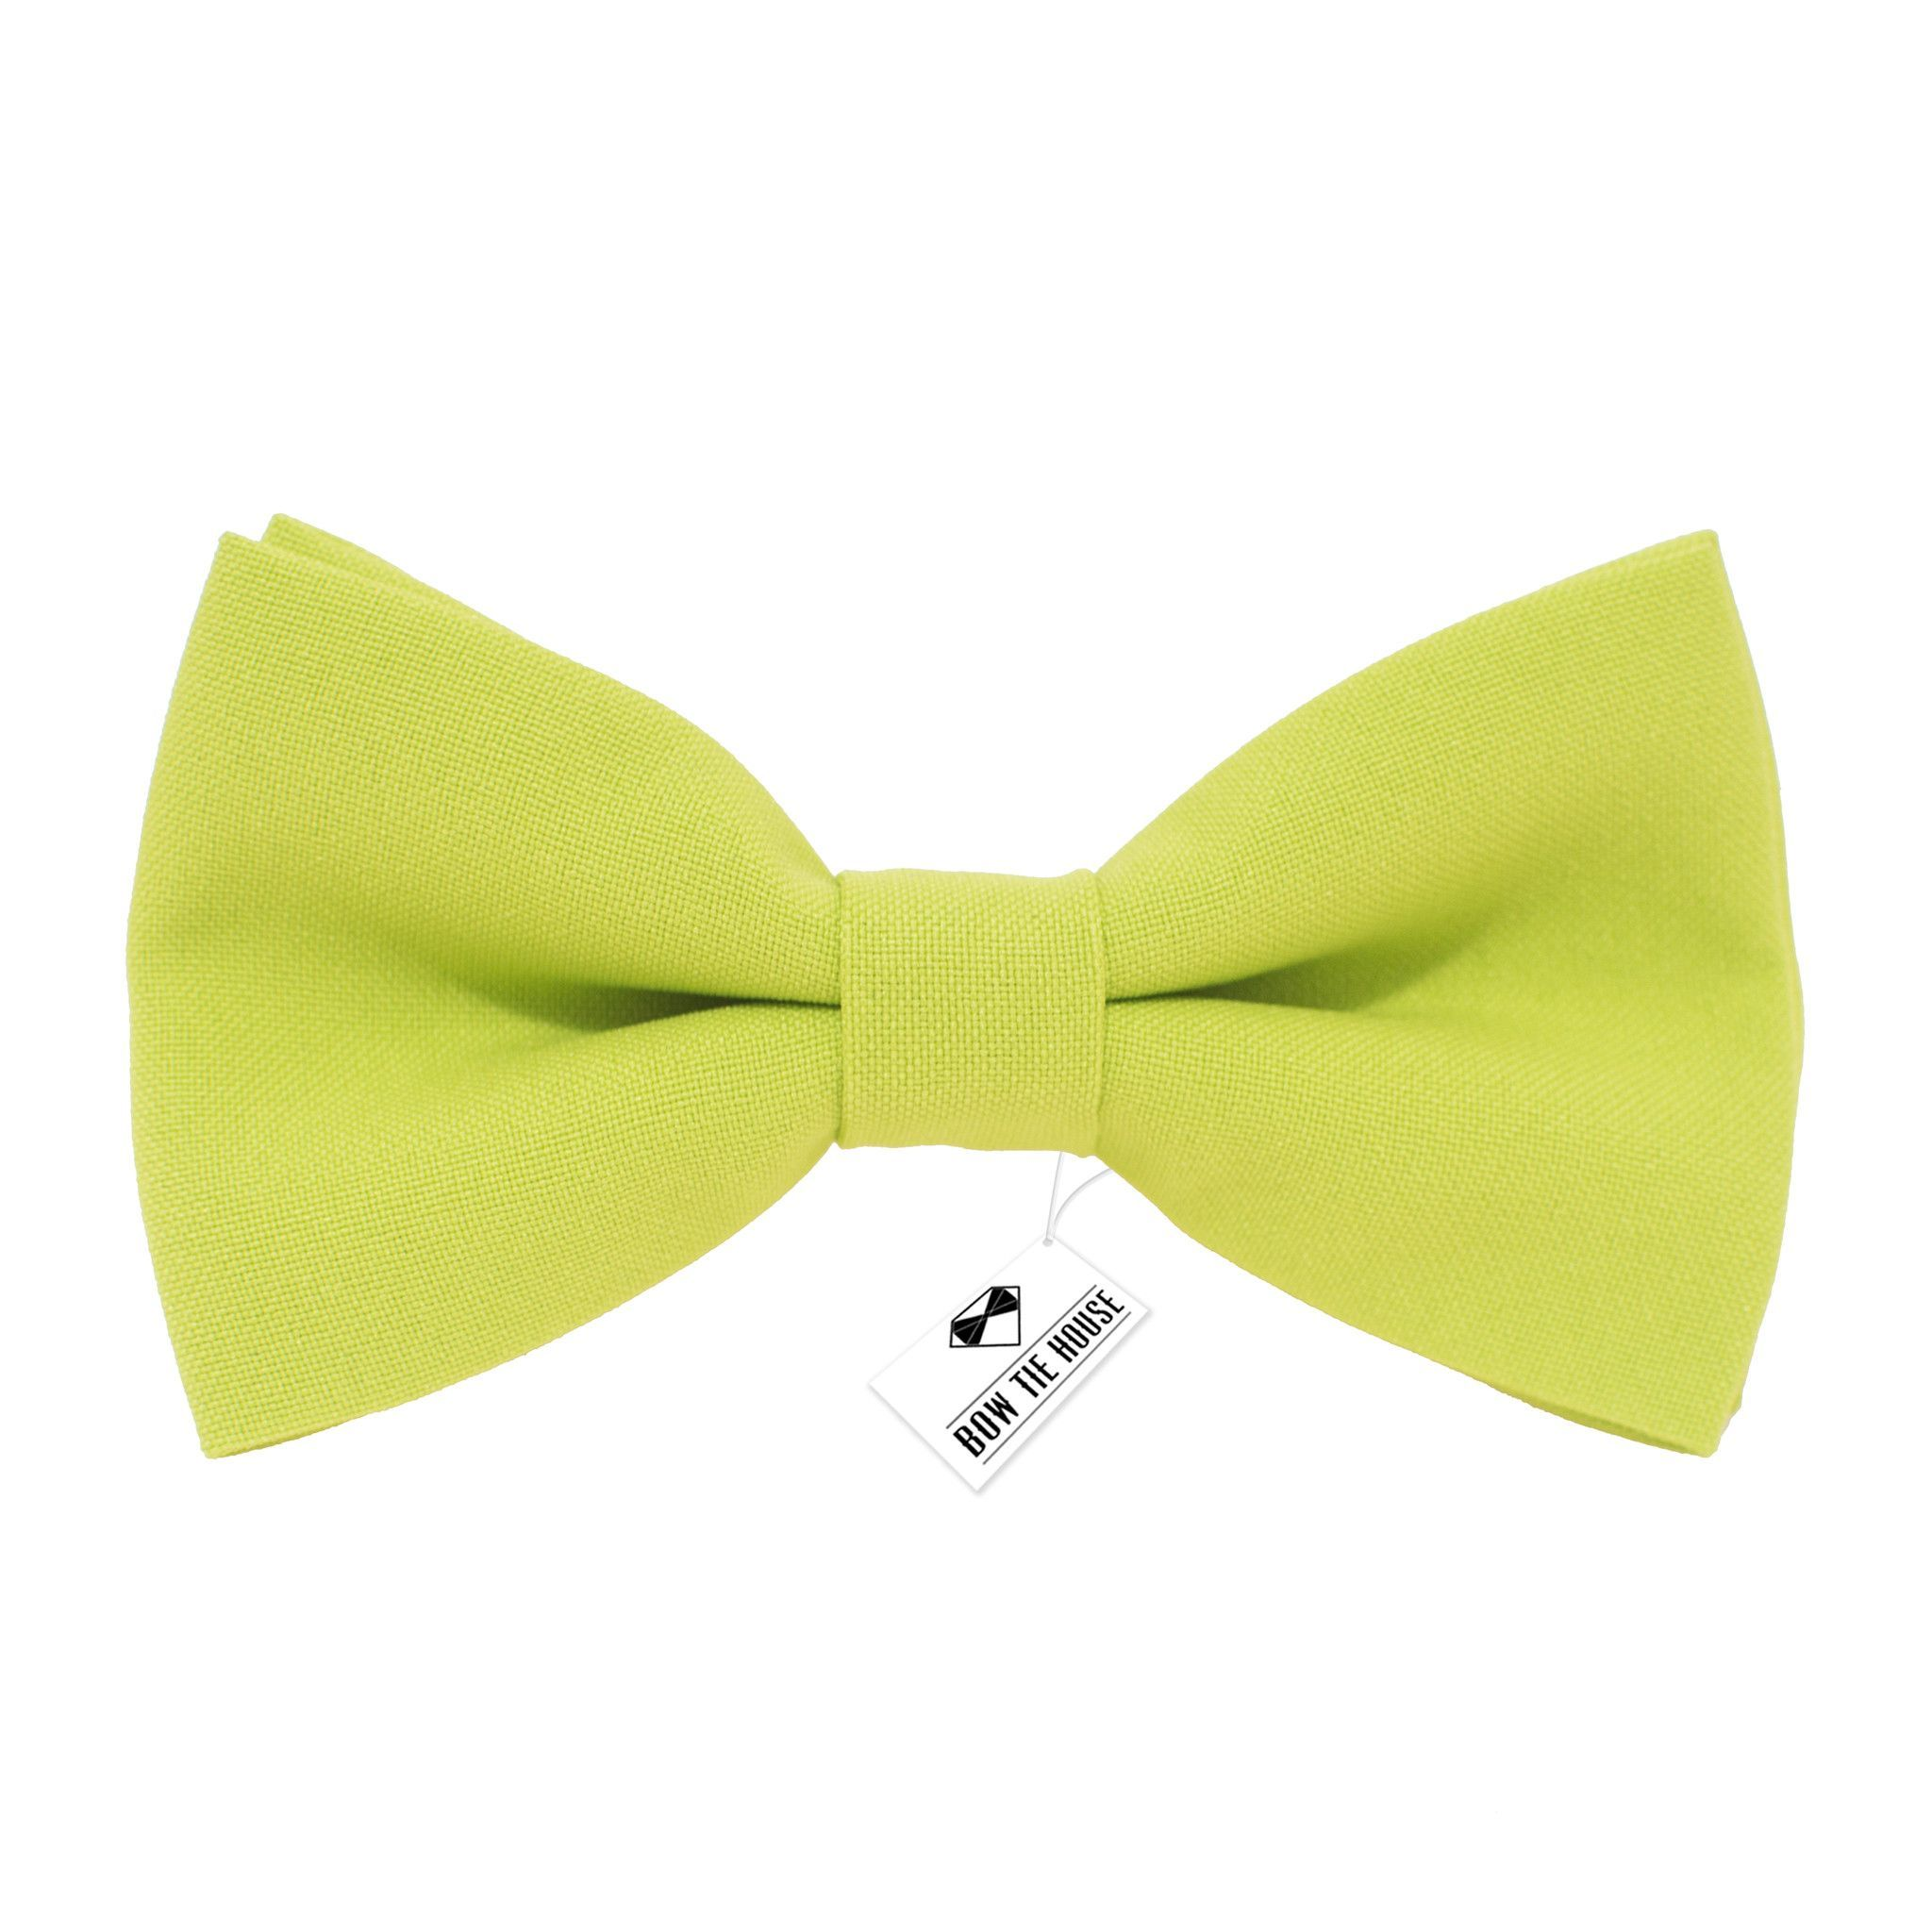 f81813be65d9 Solid pre-tied Bright Pistache Bow Tie in classic color gabardine fabric ( Small, Medium, Large)